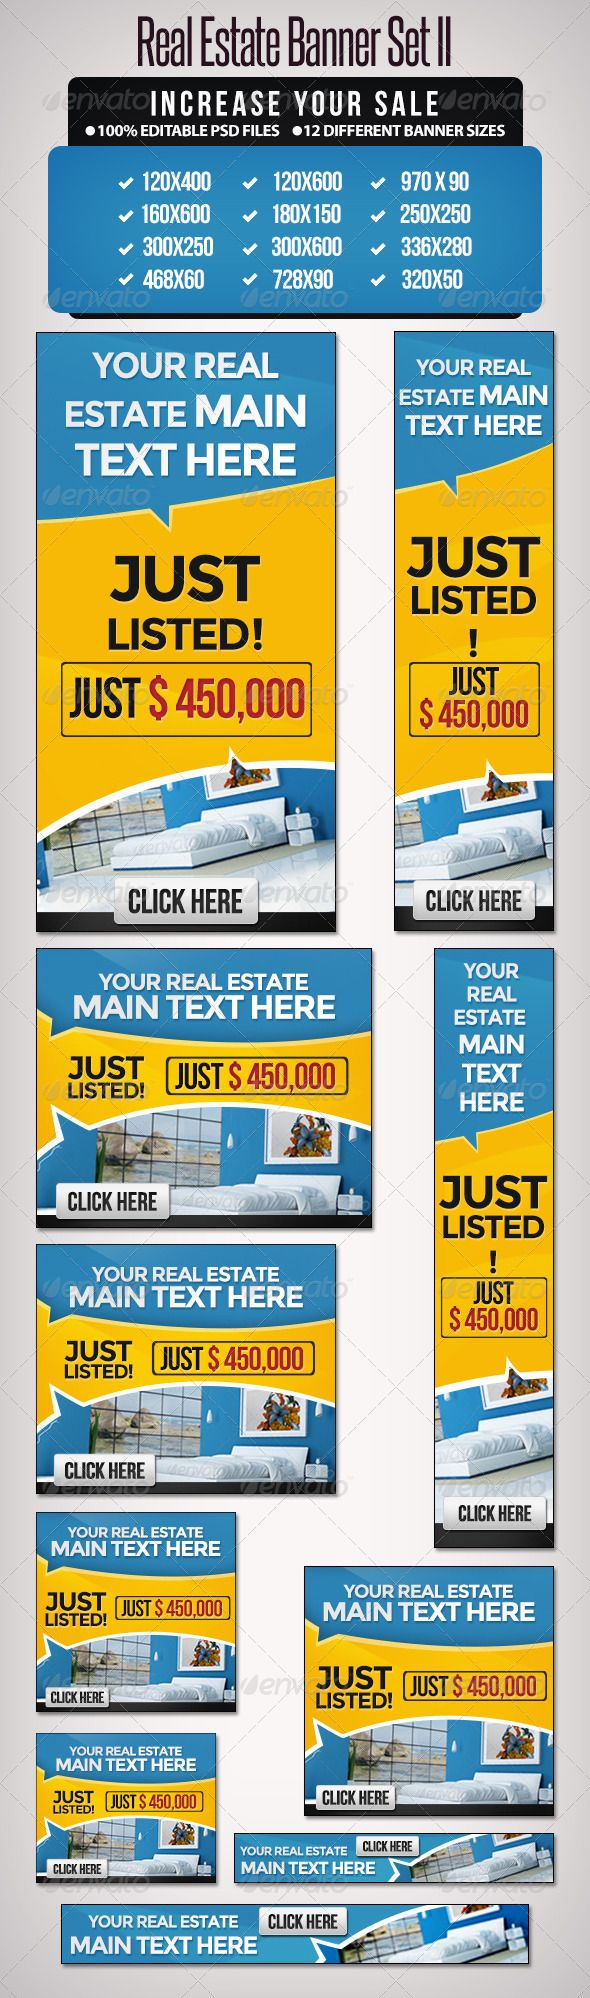 Real Estate Banner Set II - 12 sizes | Home, Promotion and The o'jays